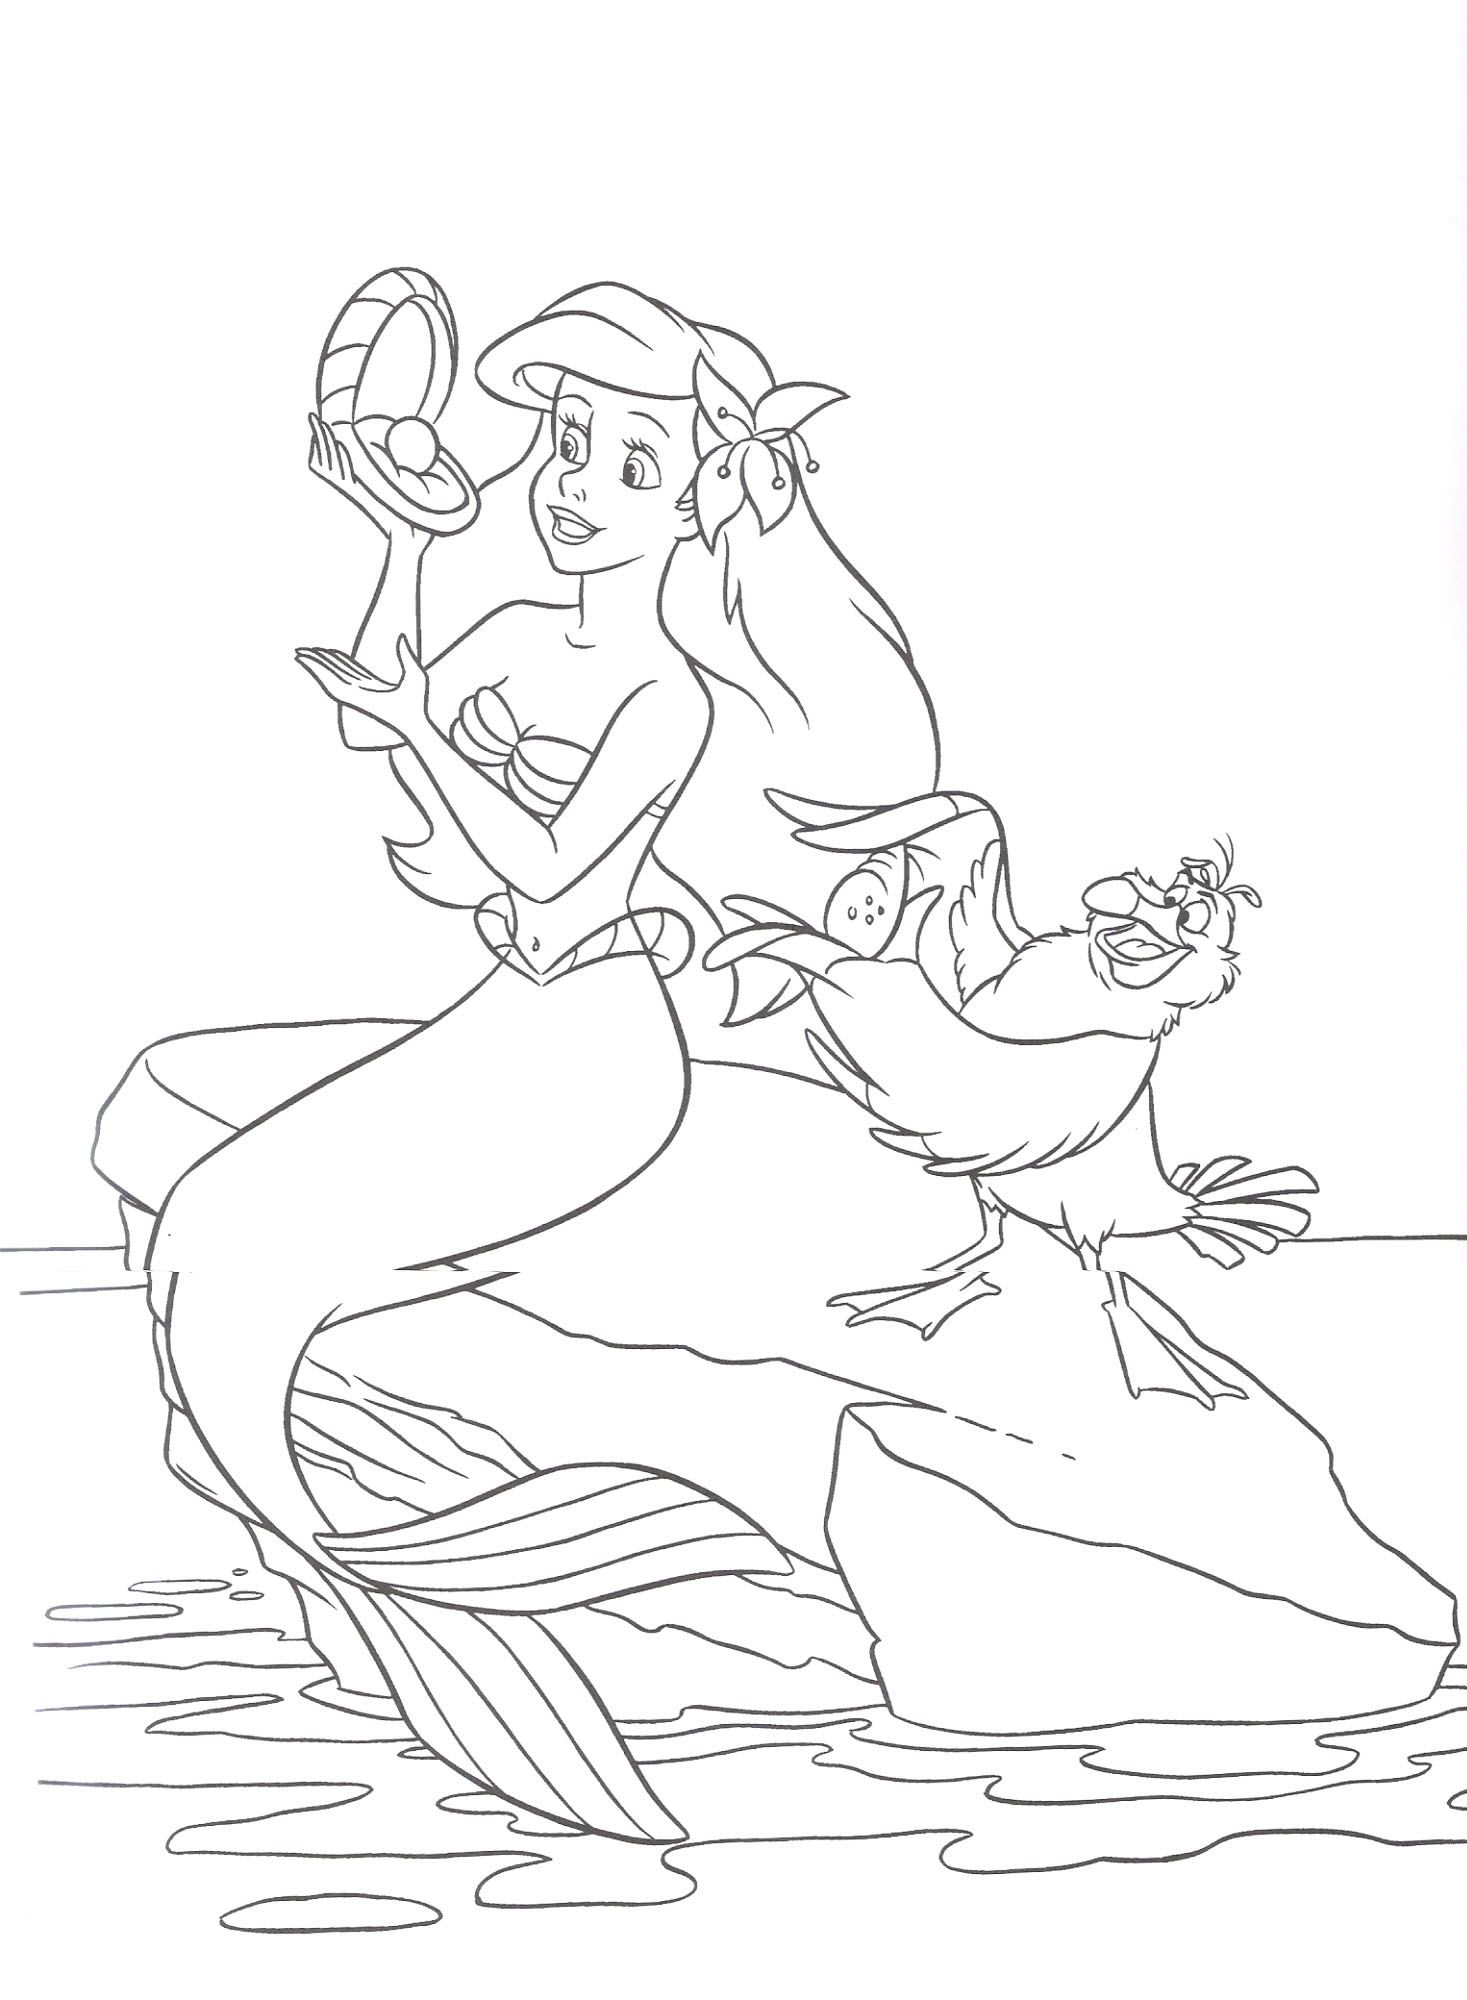 Little mermaid disney ariel coloring pages - Free Coloring Page Ariel From The Little Mermaid Disney Princess